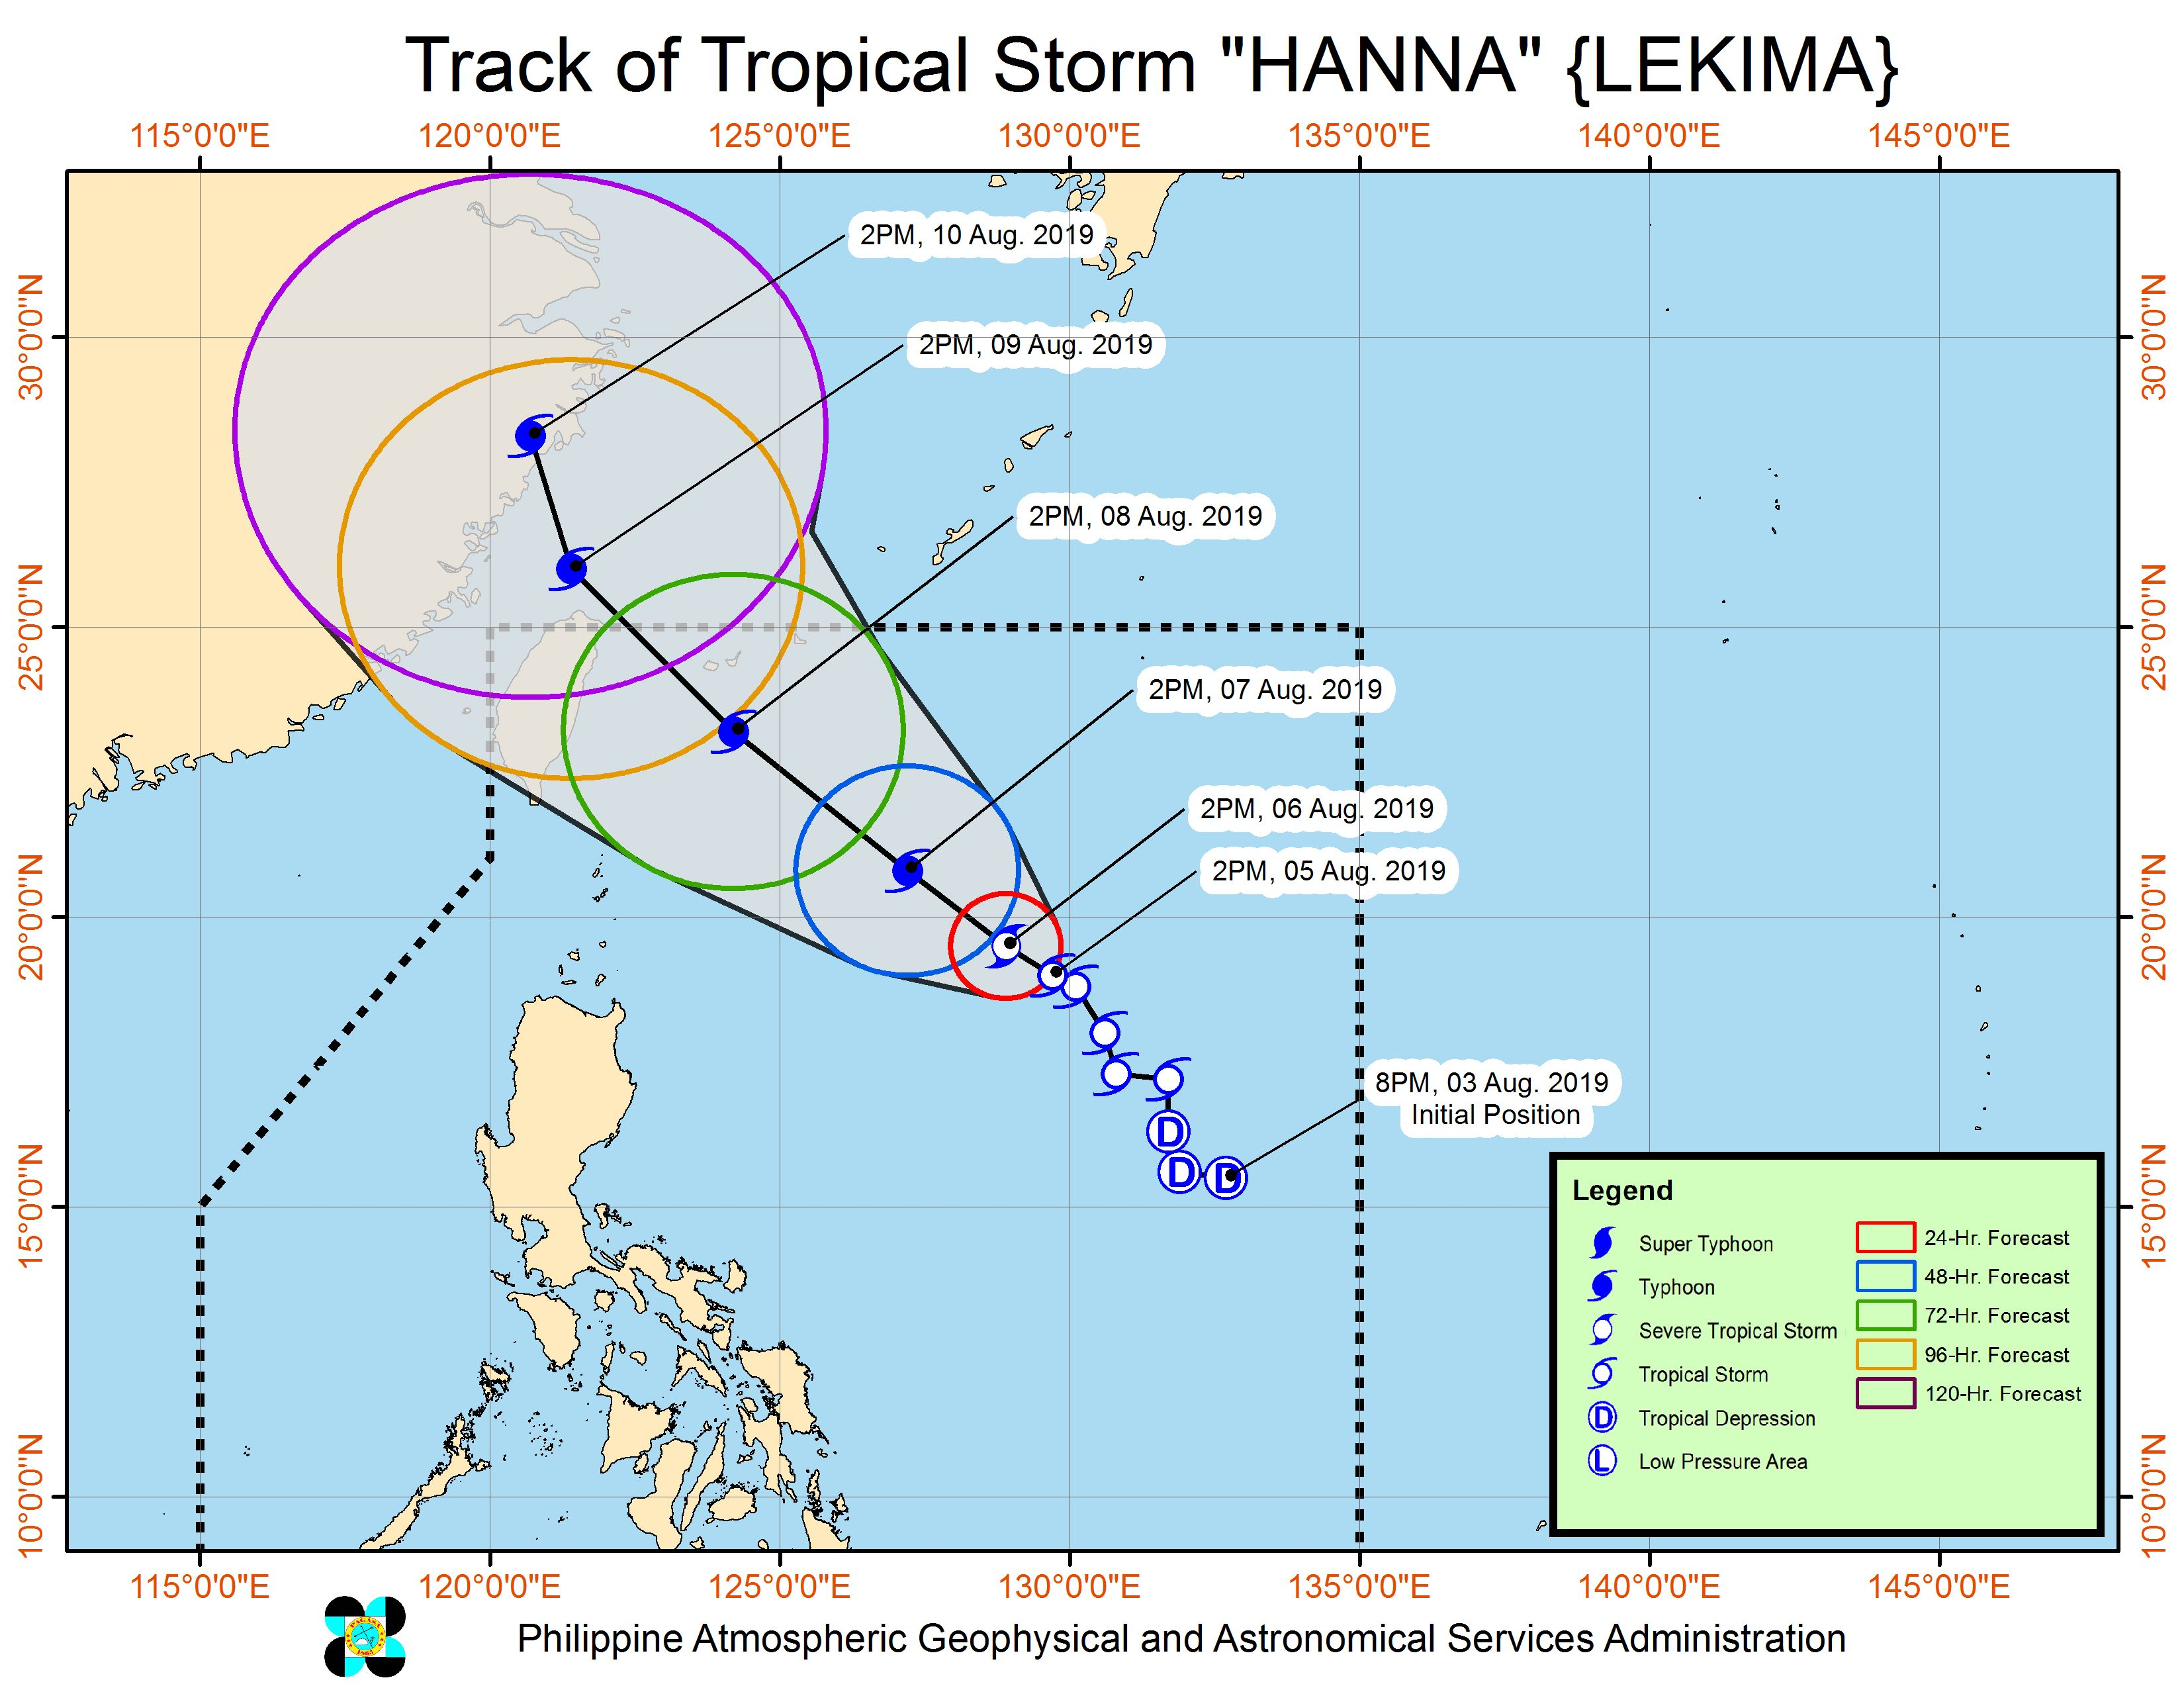 Forecast track of Tropical Storm Hanna (Lekima) as of August 5, 2019, 5 pm. Image from PAGASA